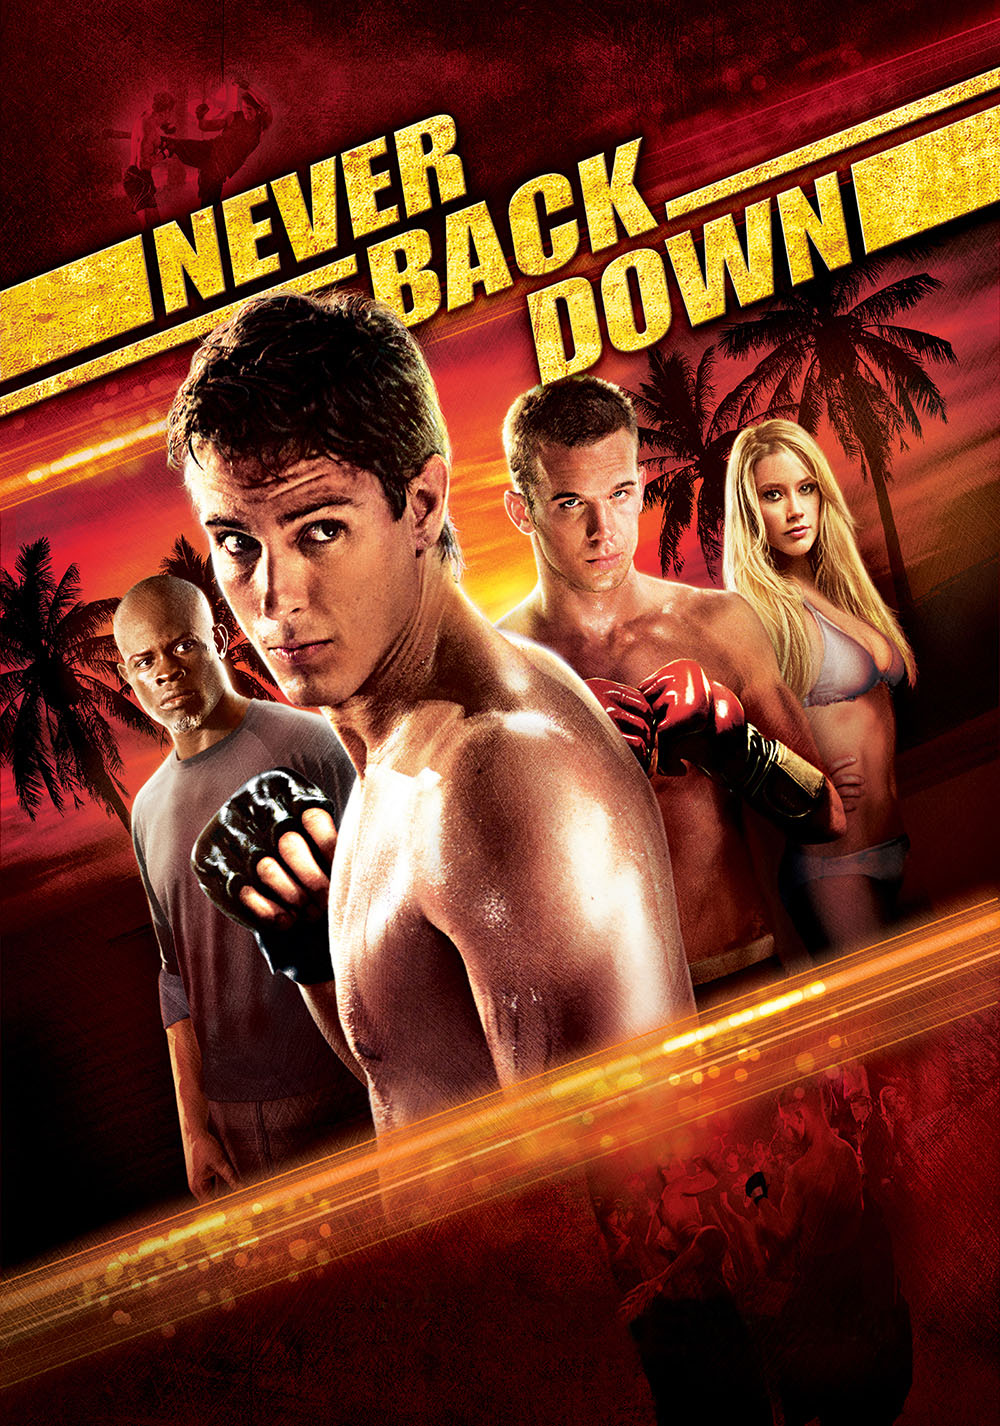 NEVER BACK DOWN (2008) MOVIE TAMIL DUBBED HD